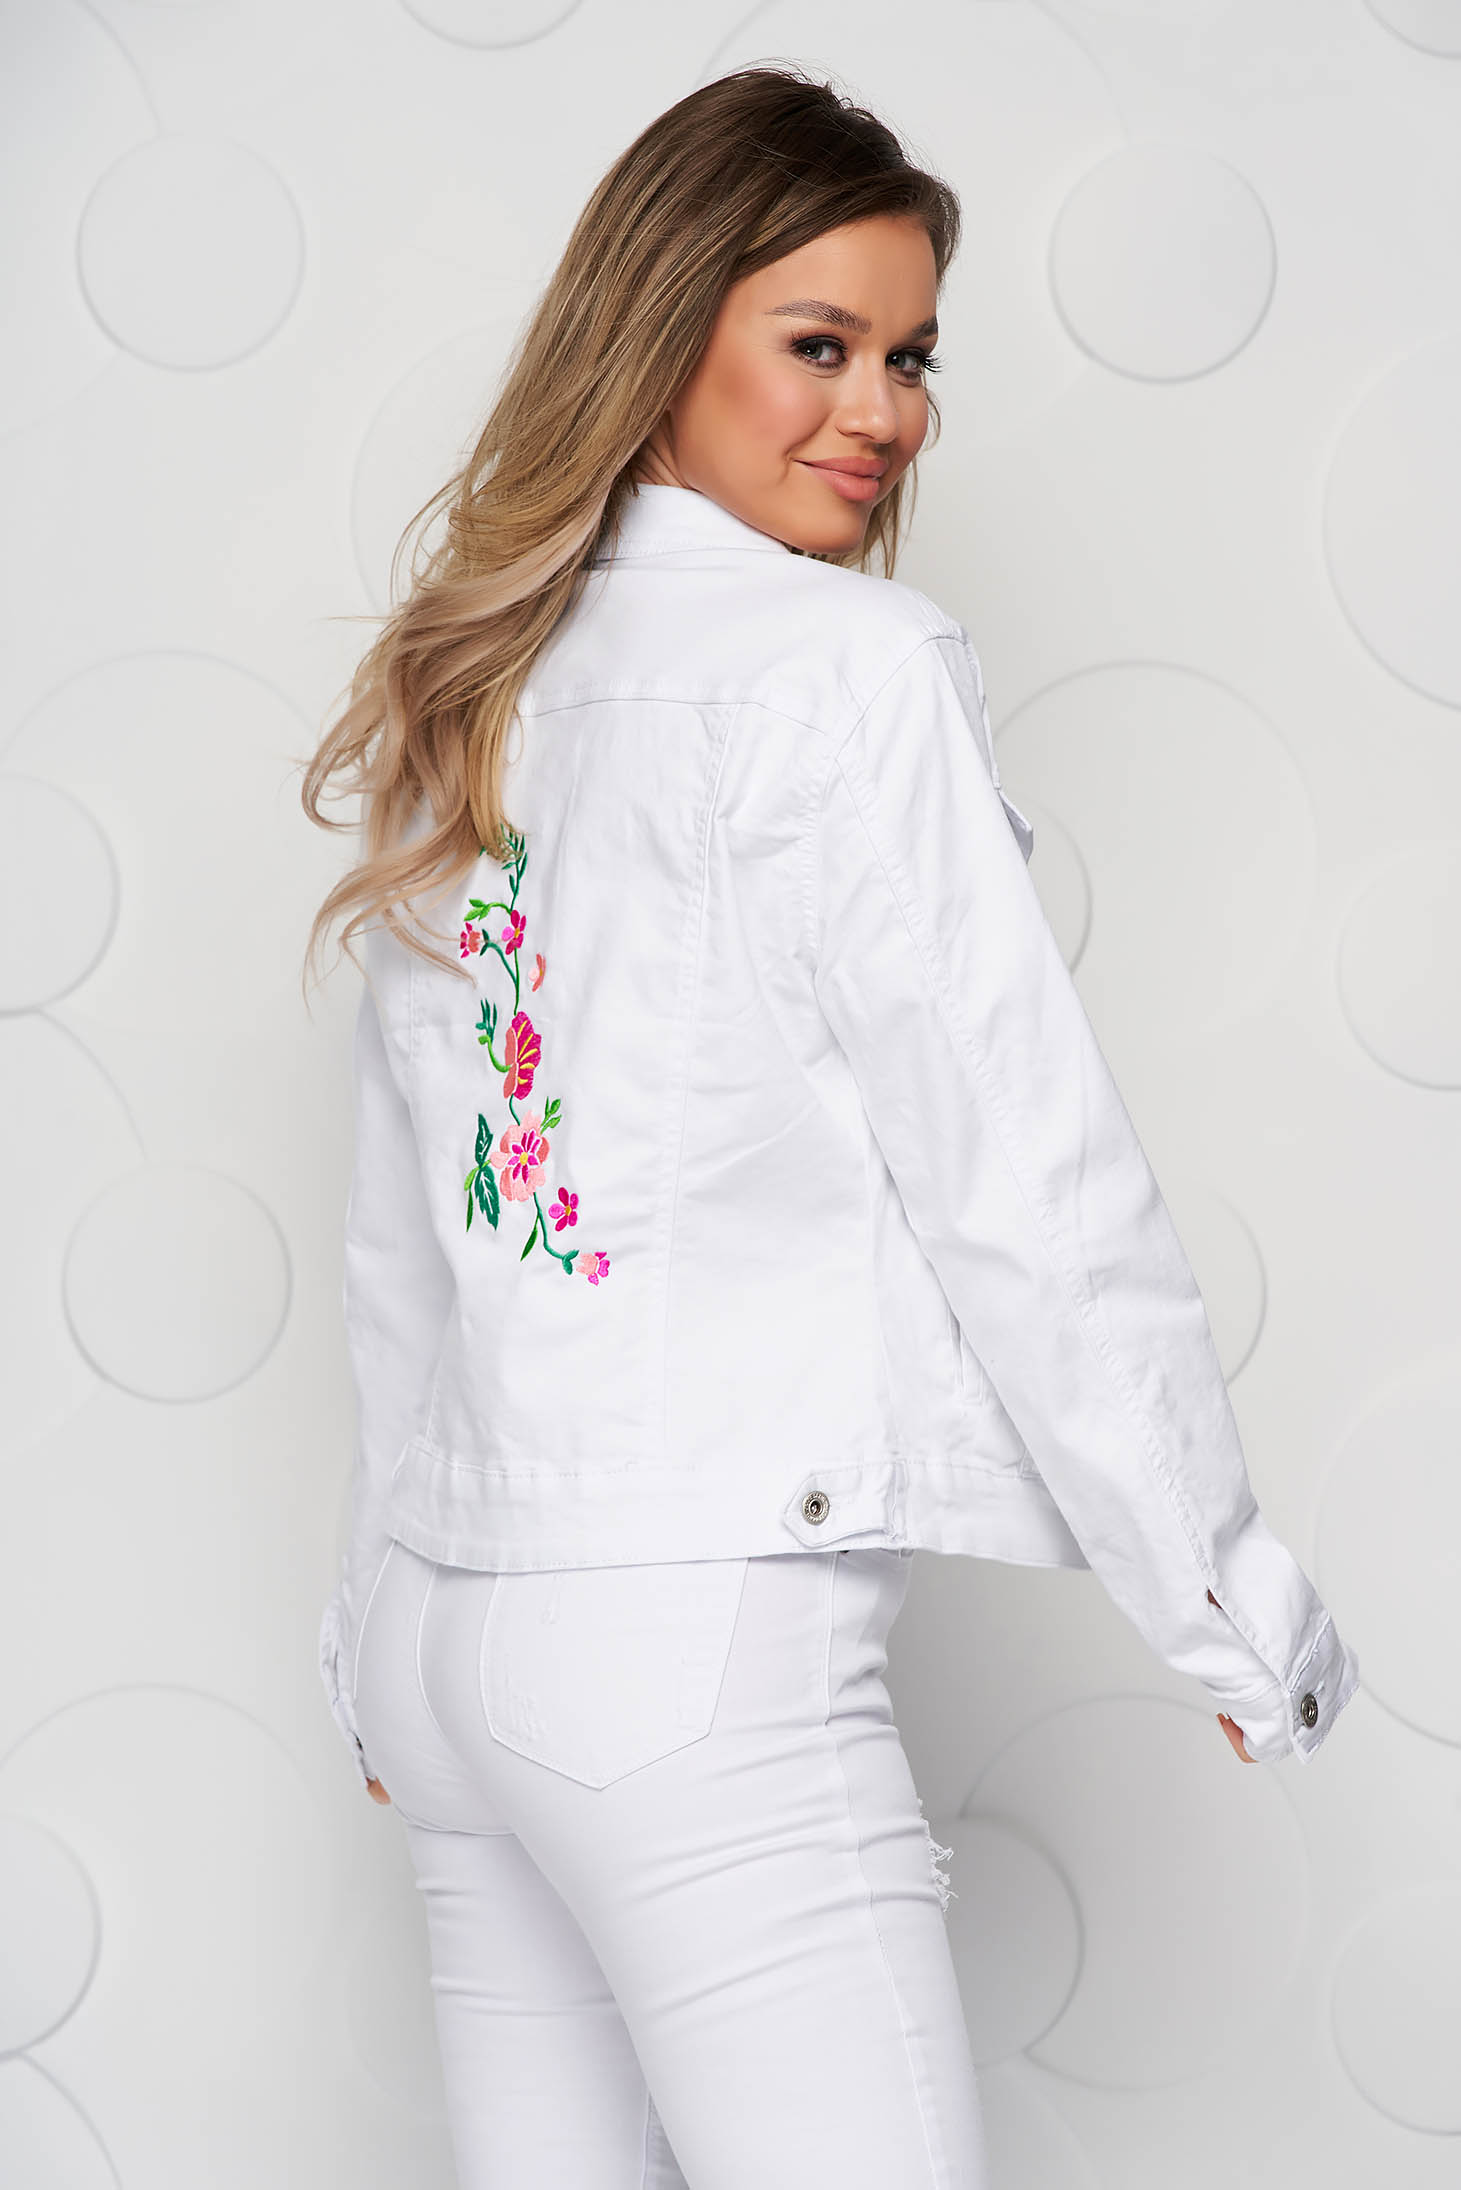 White jacket denim tented short cut embroidered